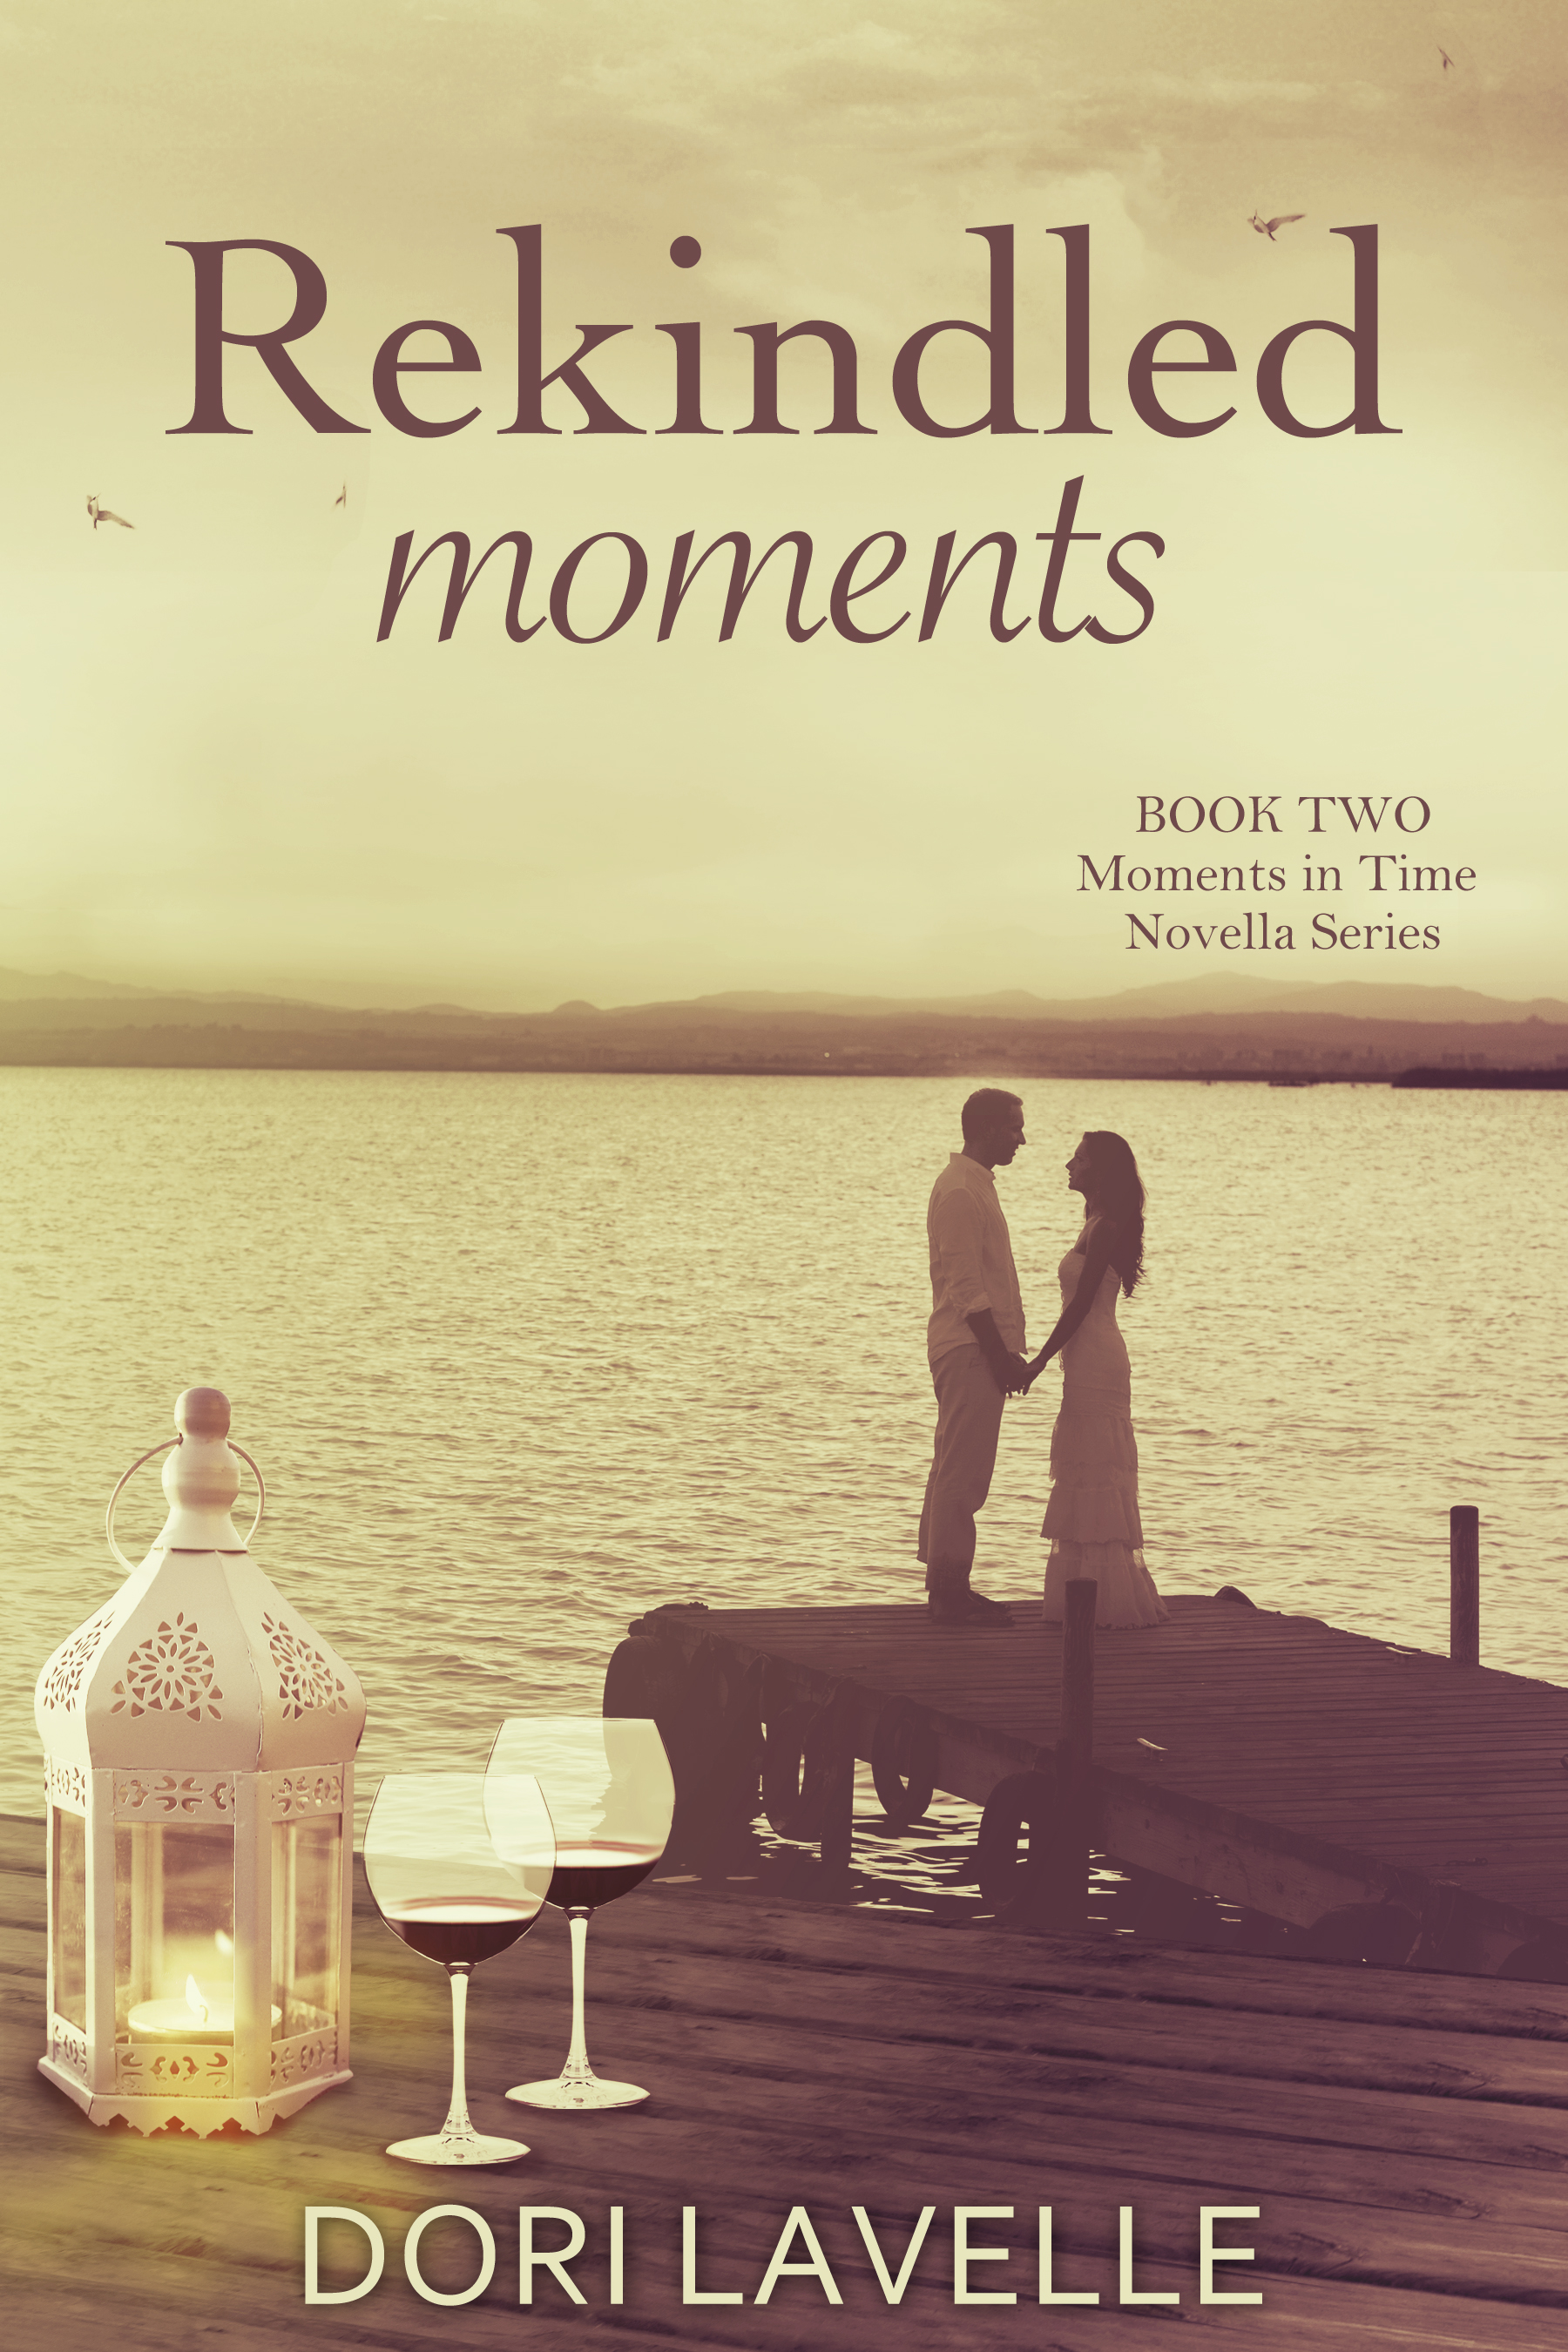 Dori Lavelle - Rekindled Moments (Moments in Time #2)